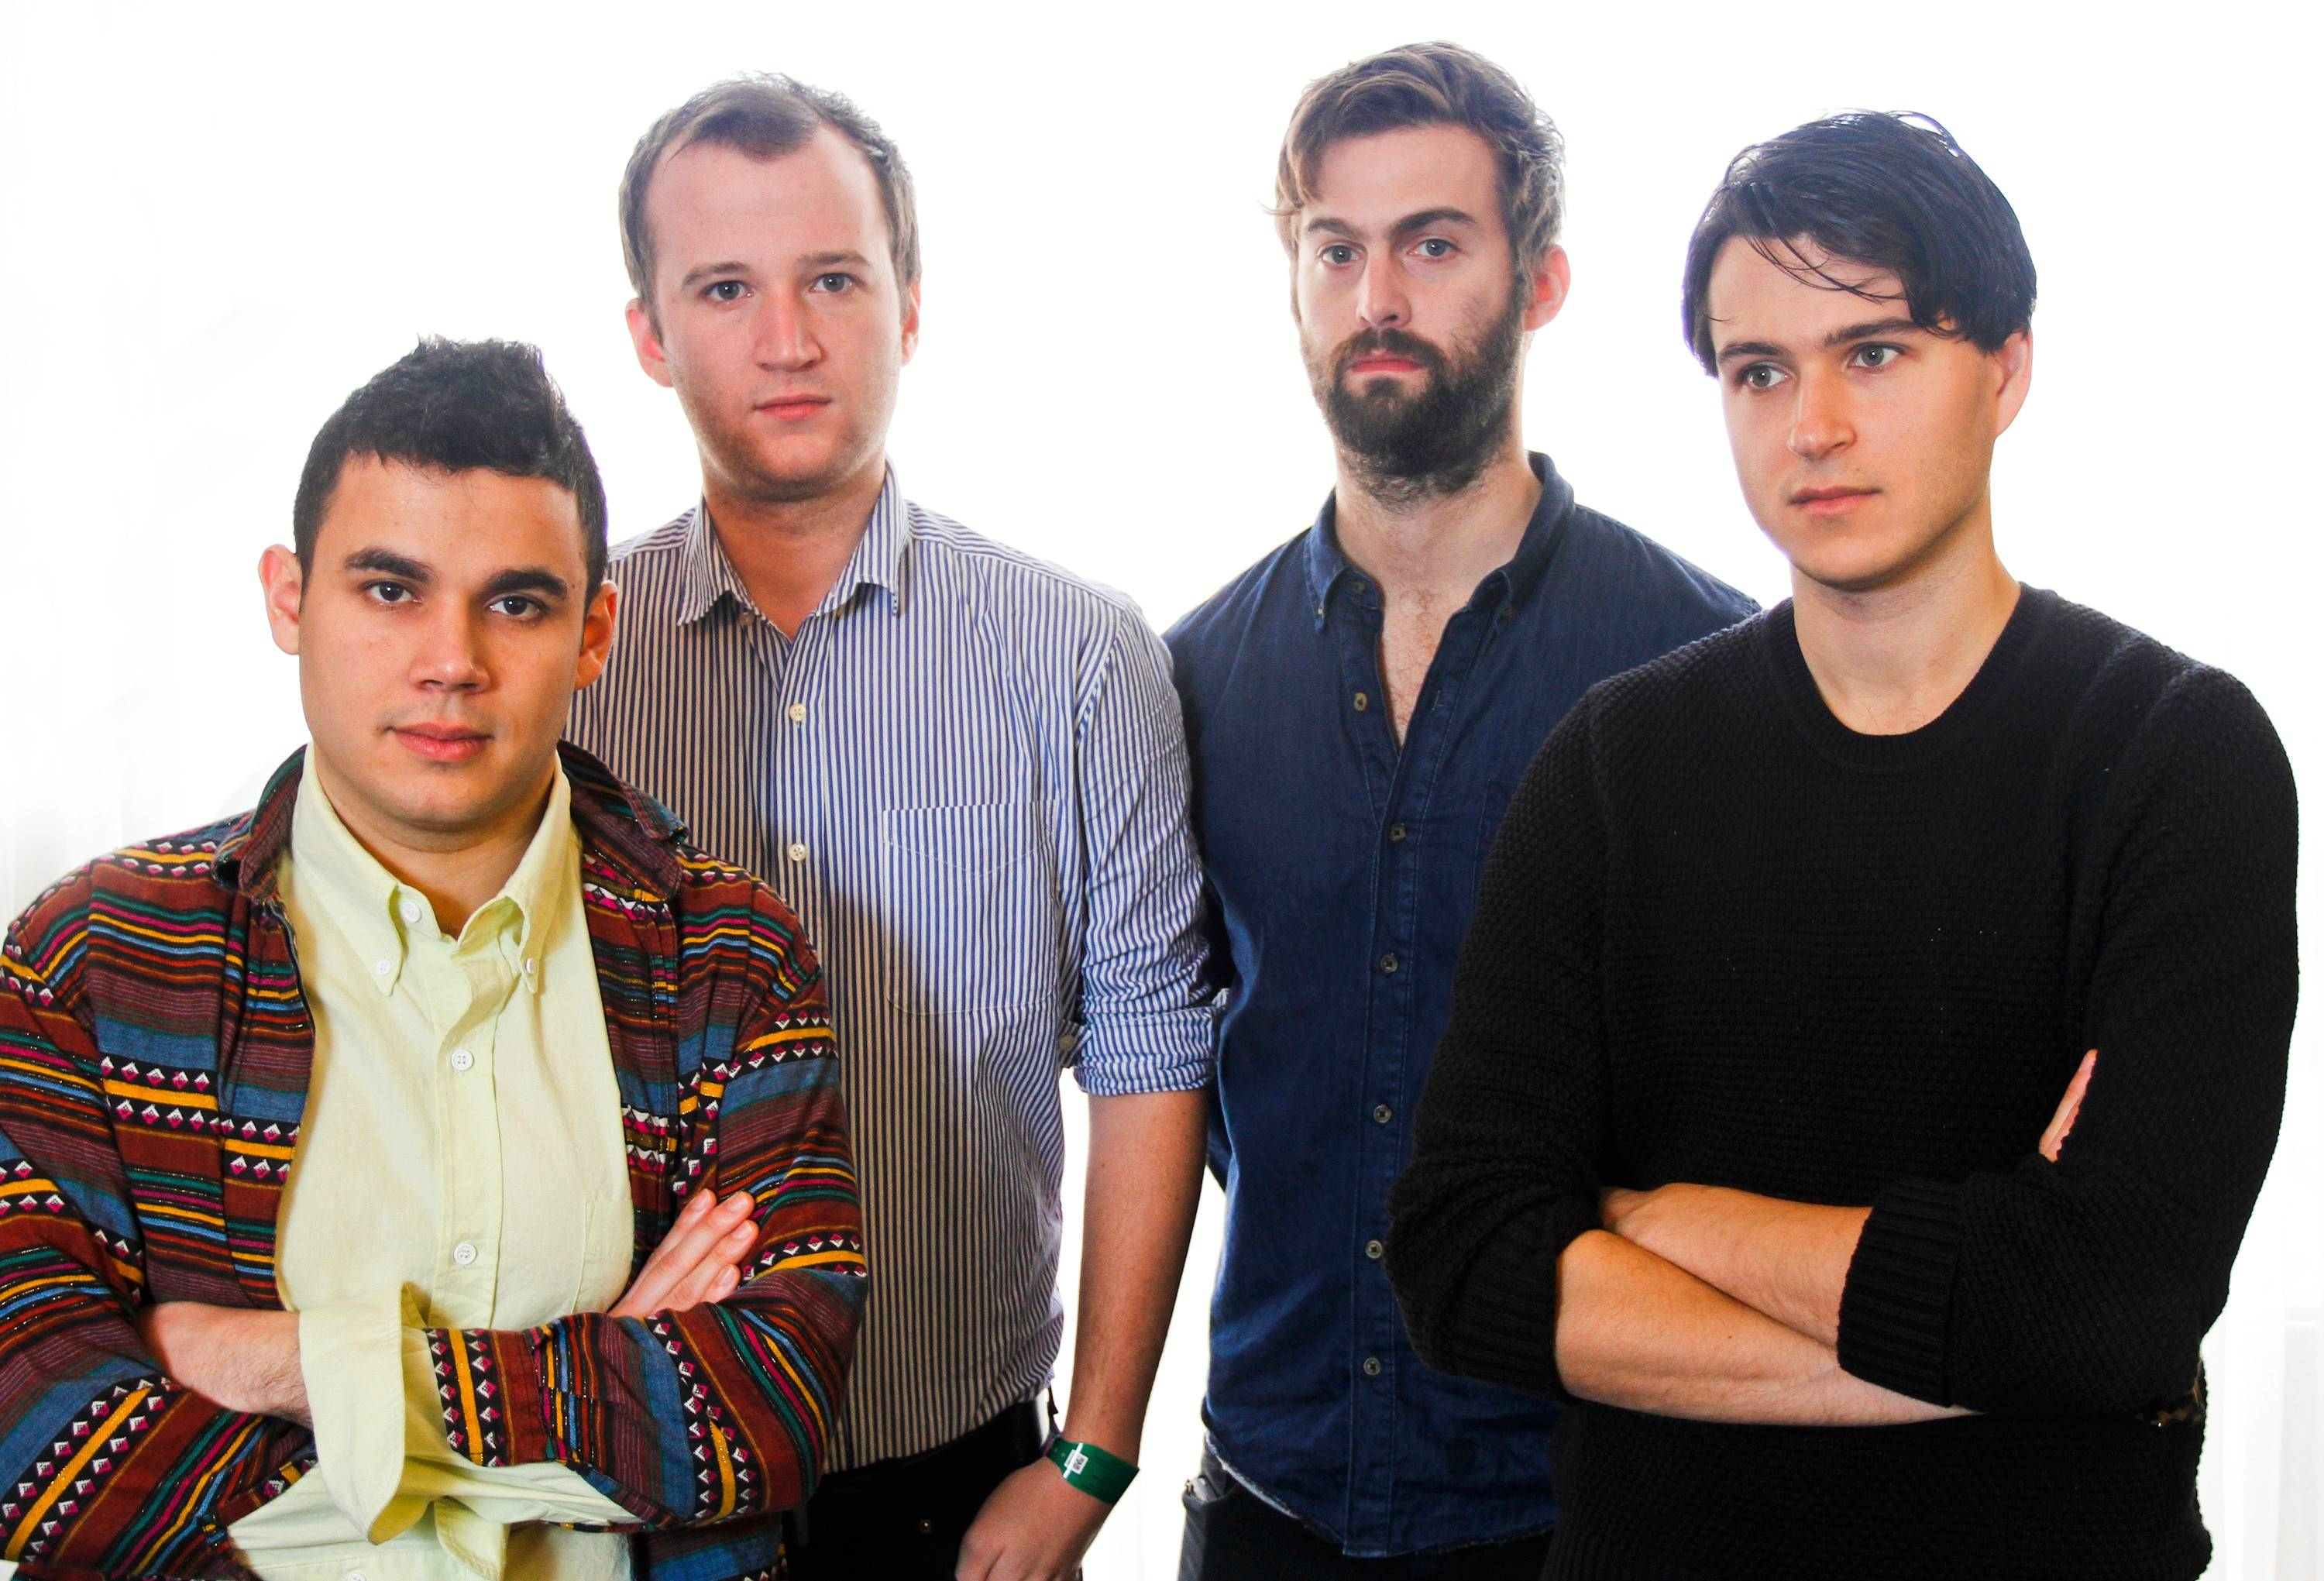 Acclaimed alt-rock band Vampire Weekend will headline a show next week at the UIC Pavilion.